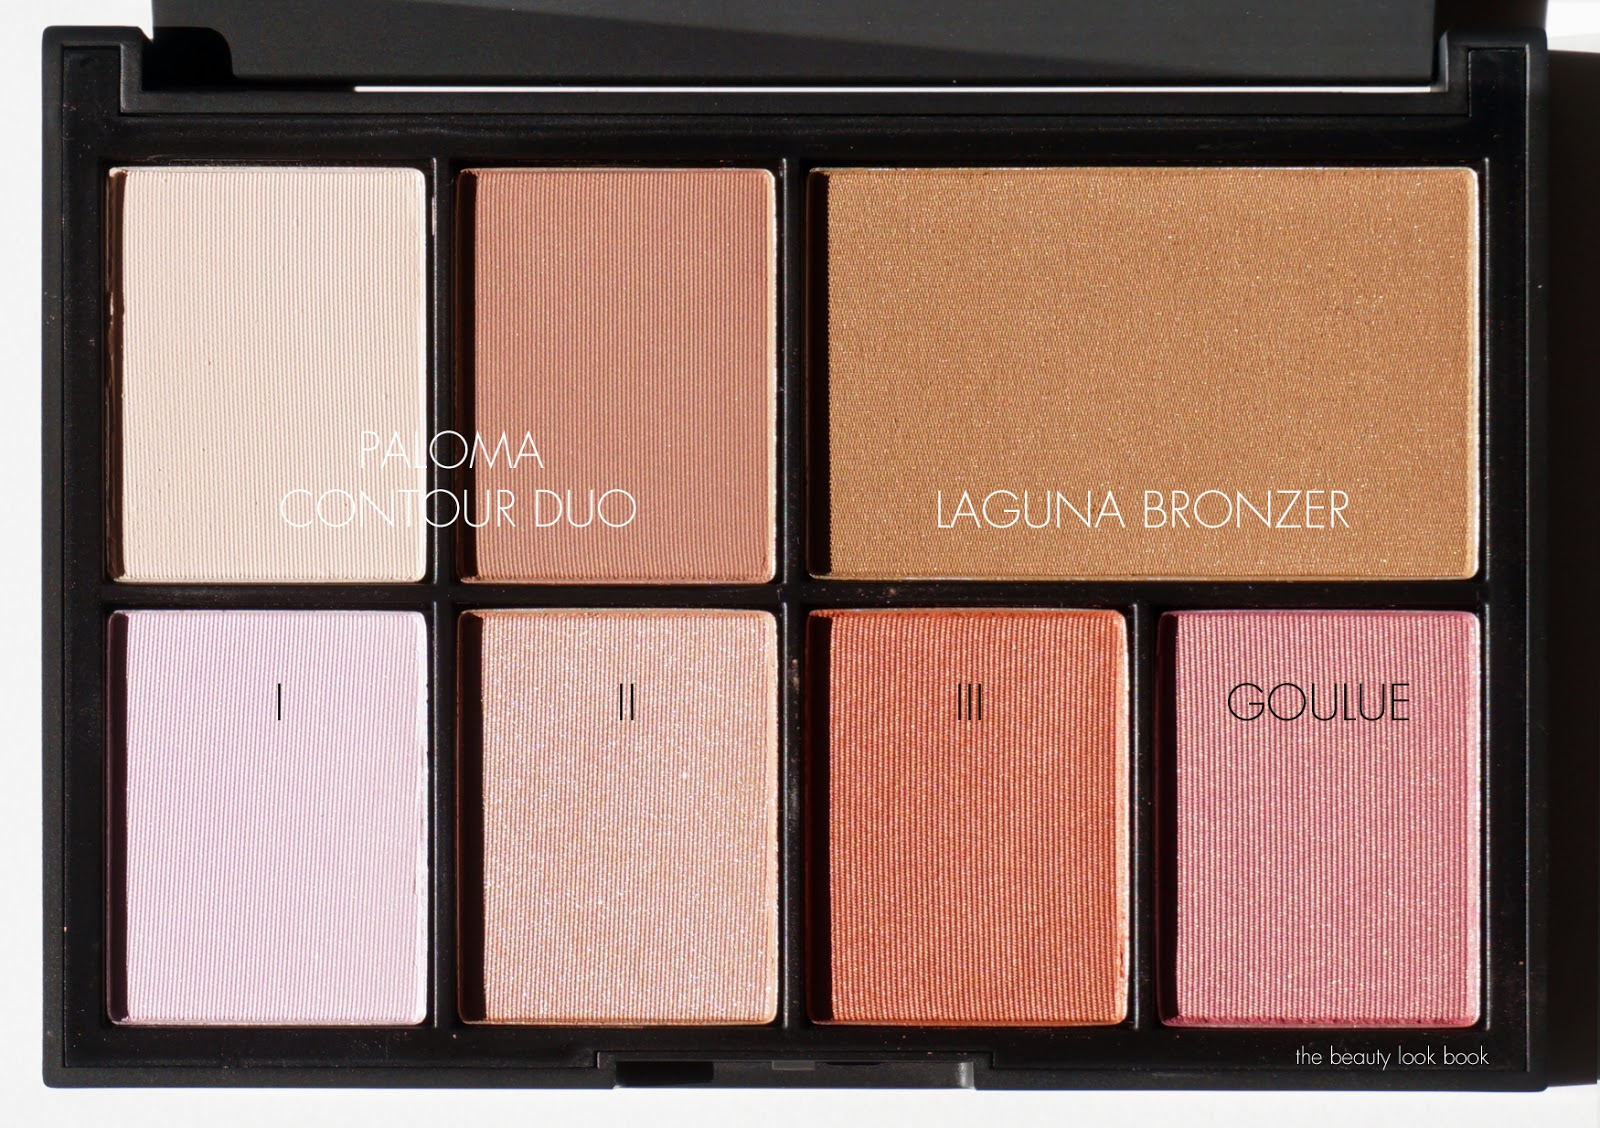 To acquire Narsissist nars eye cheek palettes spring pictures trends